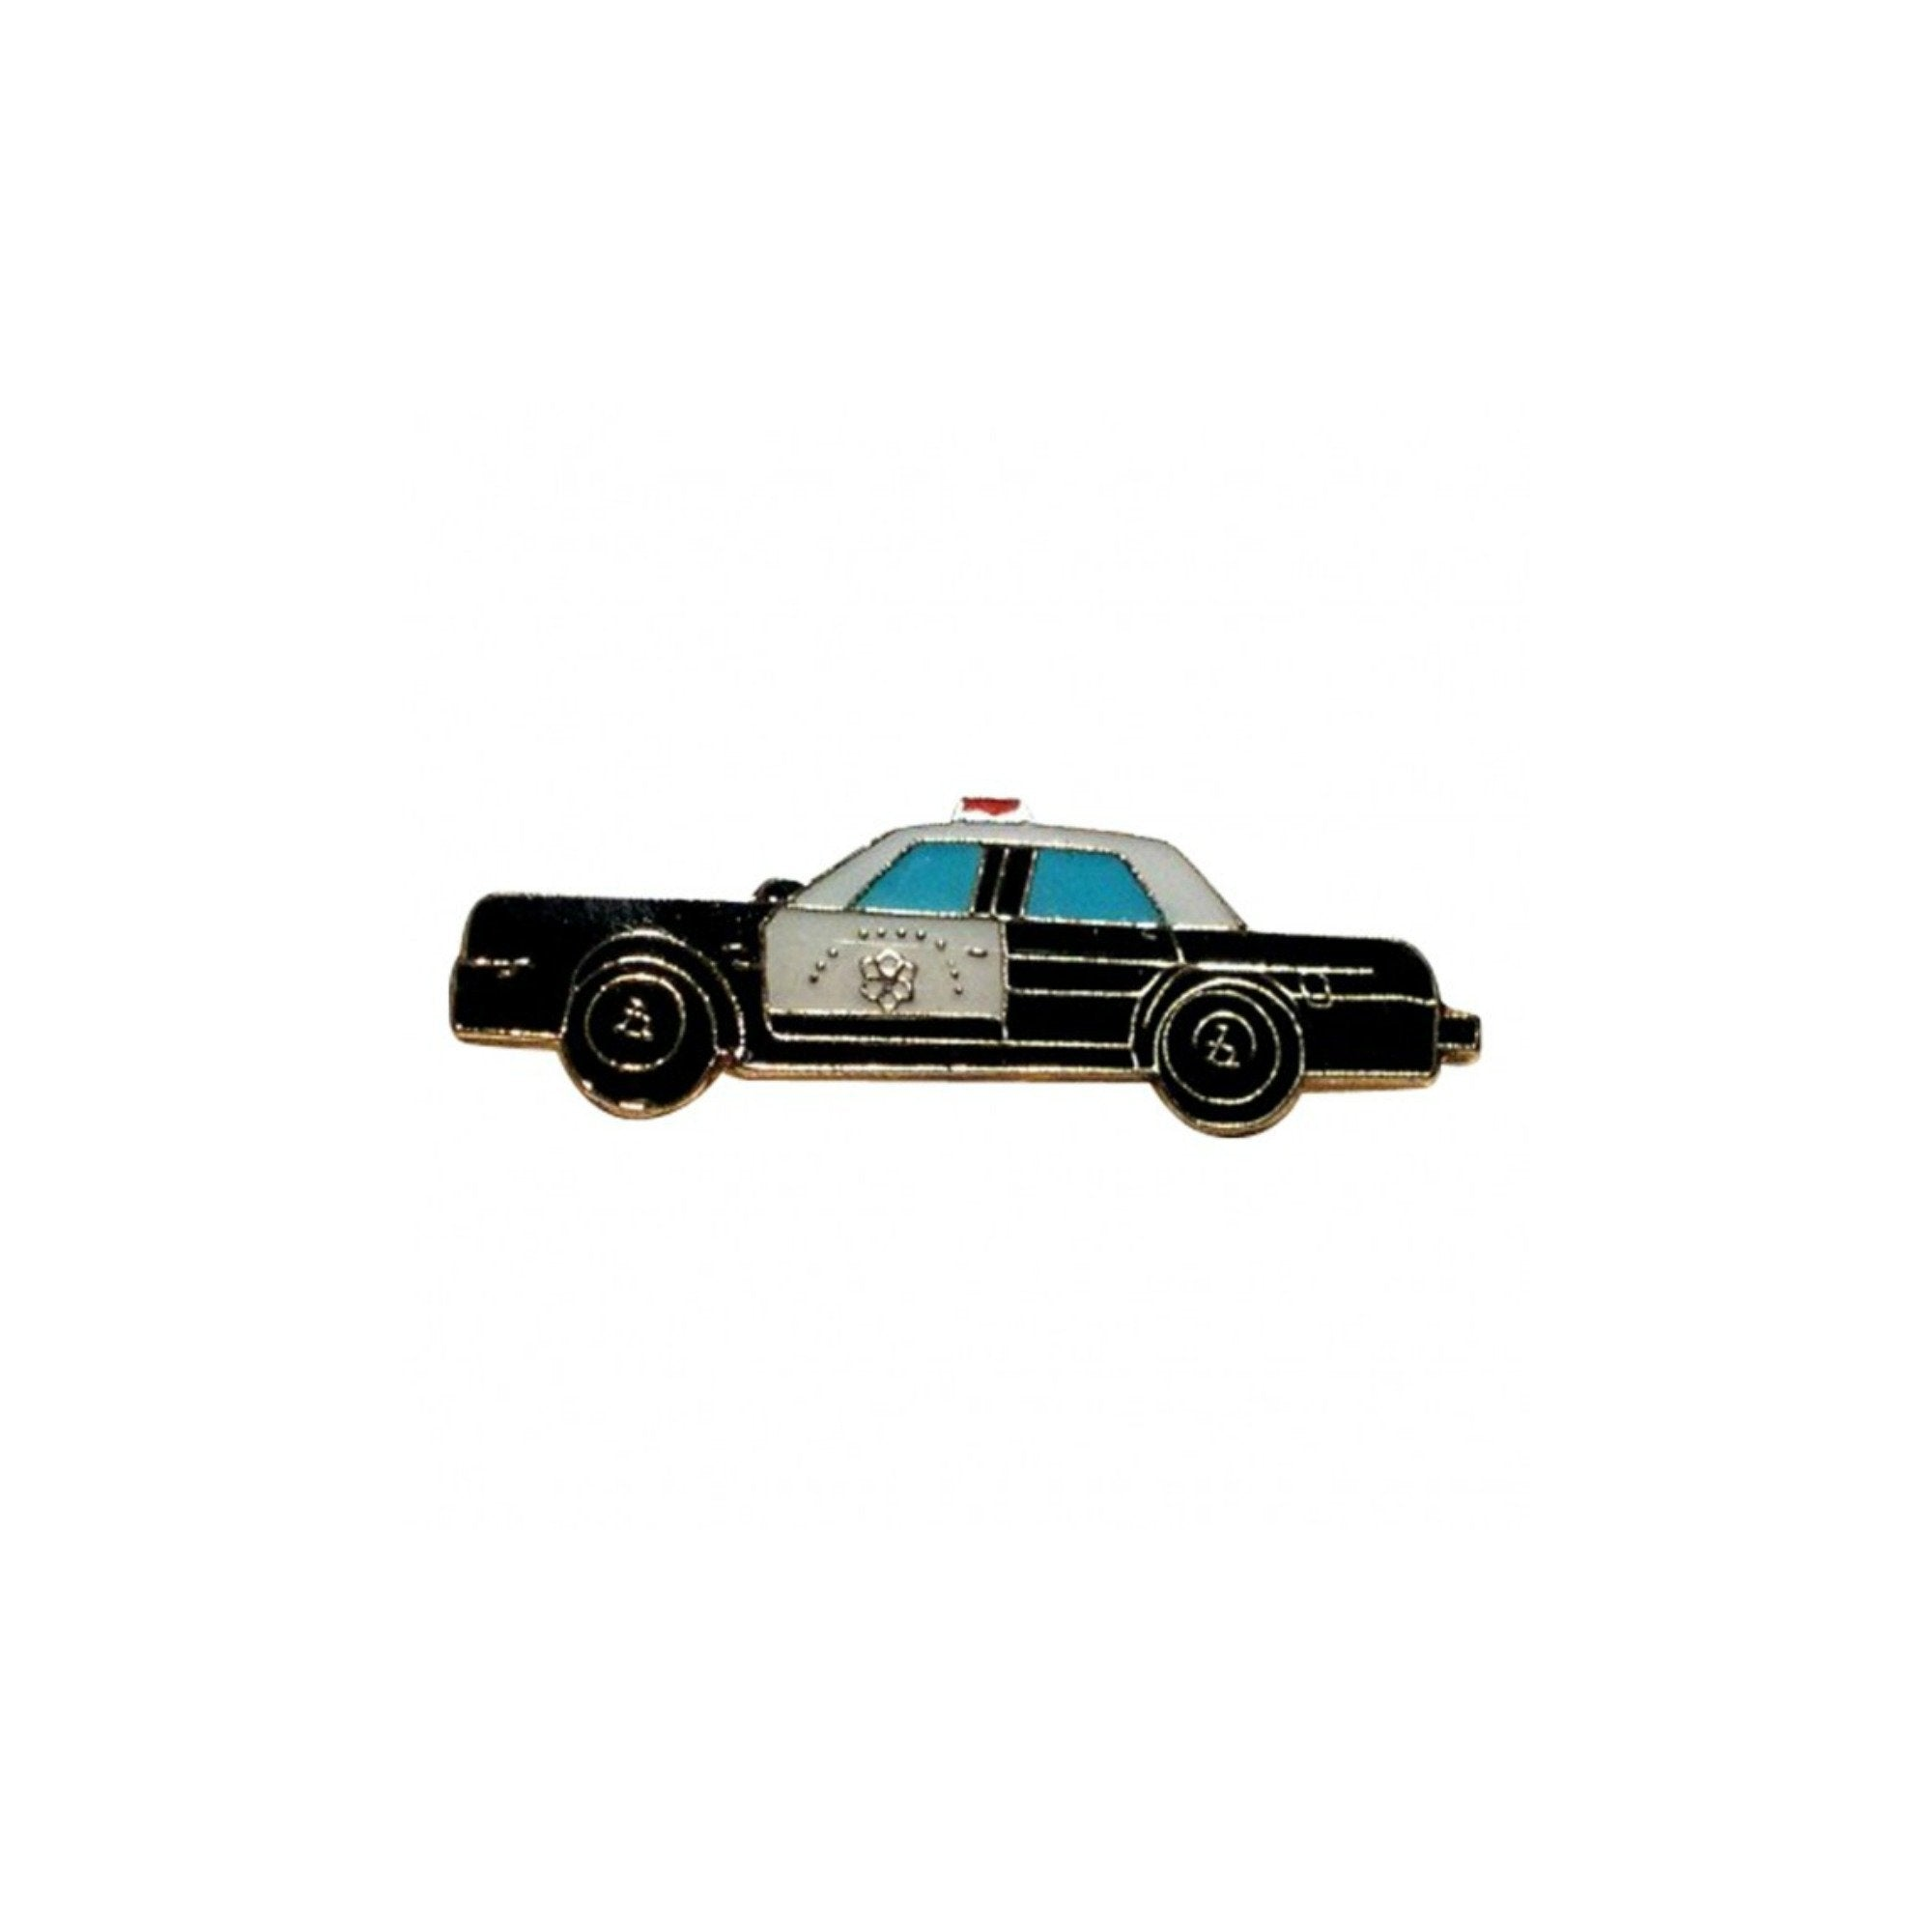 American Police Car Enamel Lapel Pin Badge - Minimum Mouse